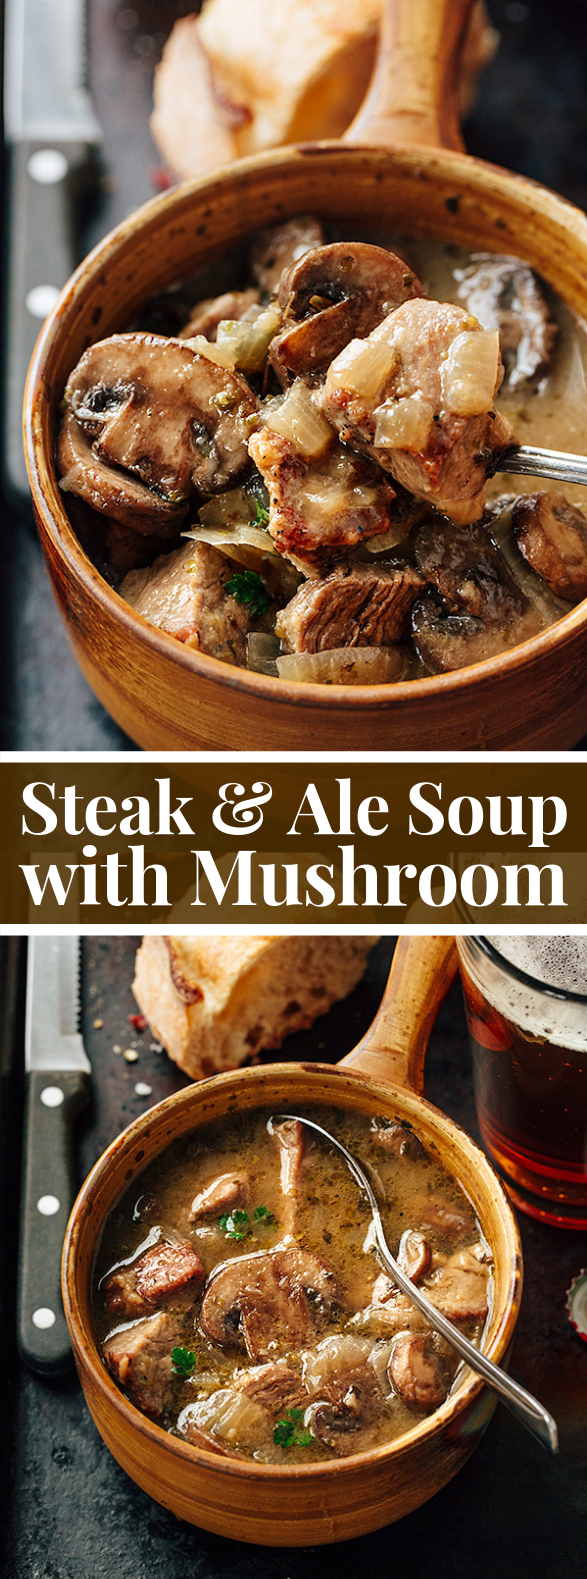 Steak and Ale Soup with Mushrooms, and the Process of Transformation #vegetarian #food